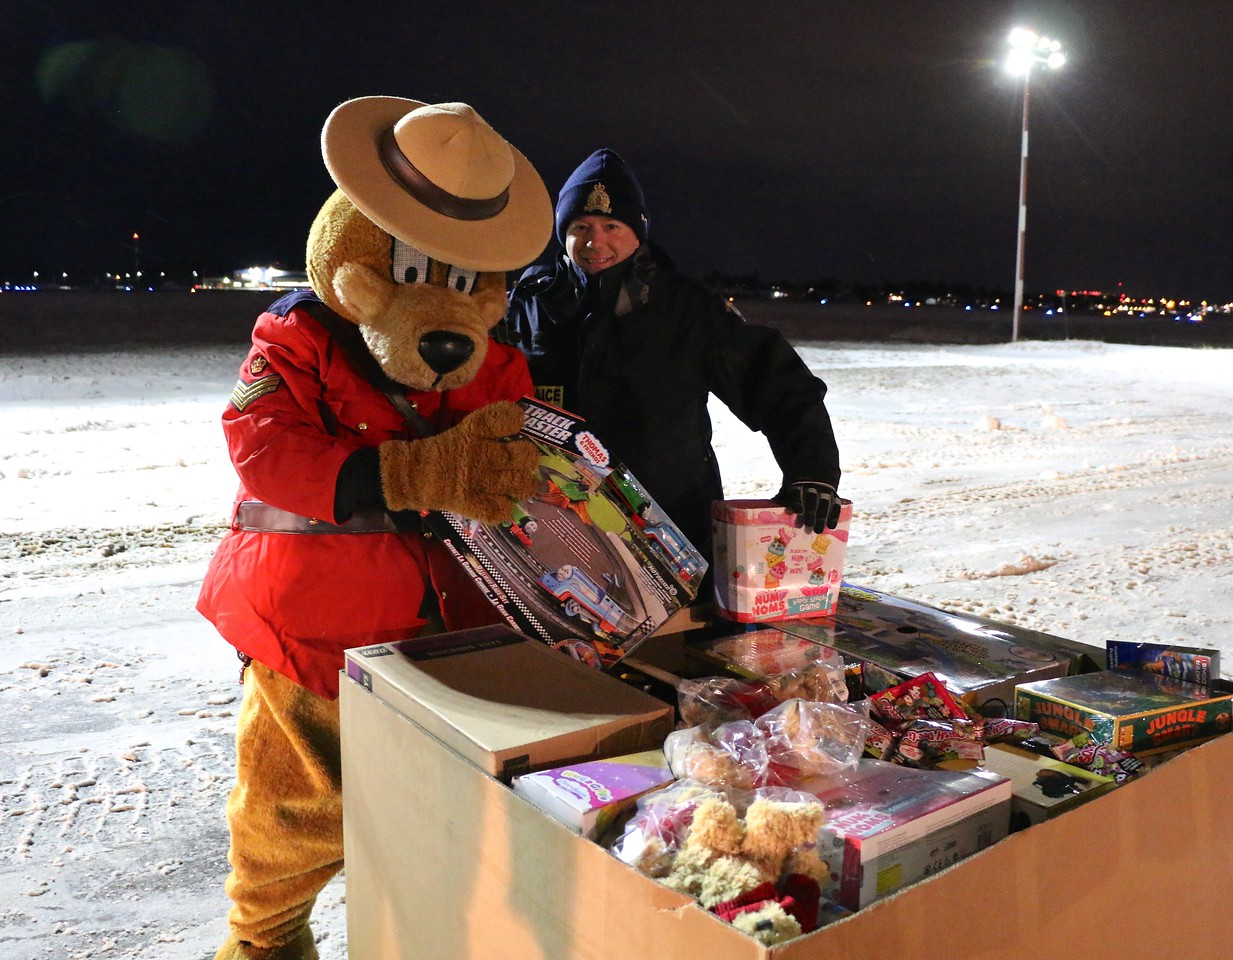 A person in a large bear mascot costume wearing an RCMP uniform and a person wearing a military uniform look at toys packed in a waist-high cardboard box.